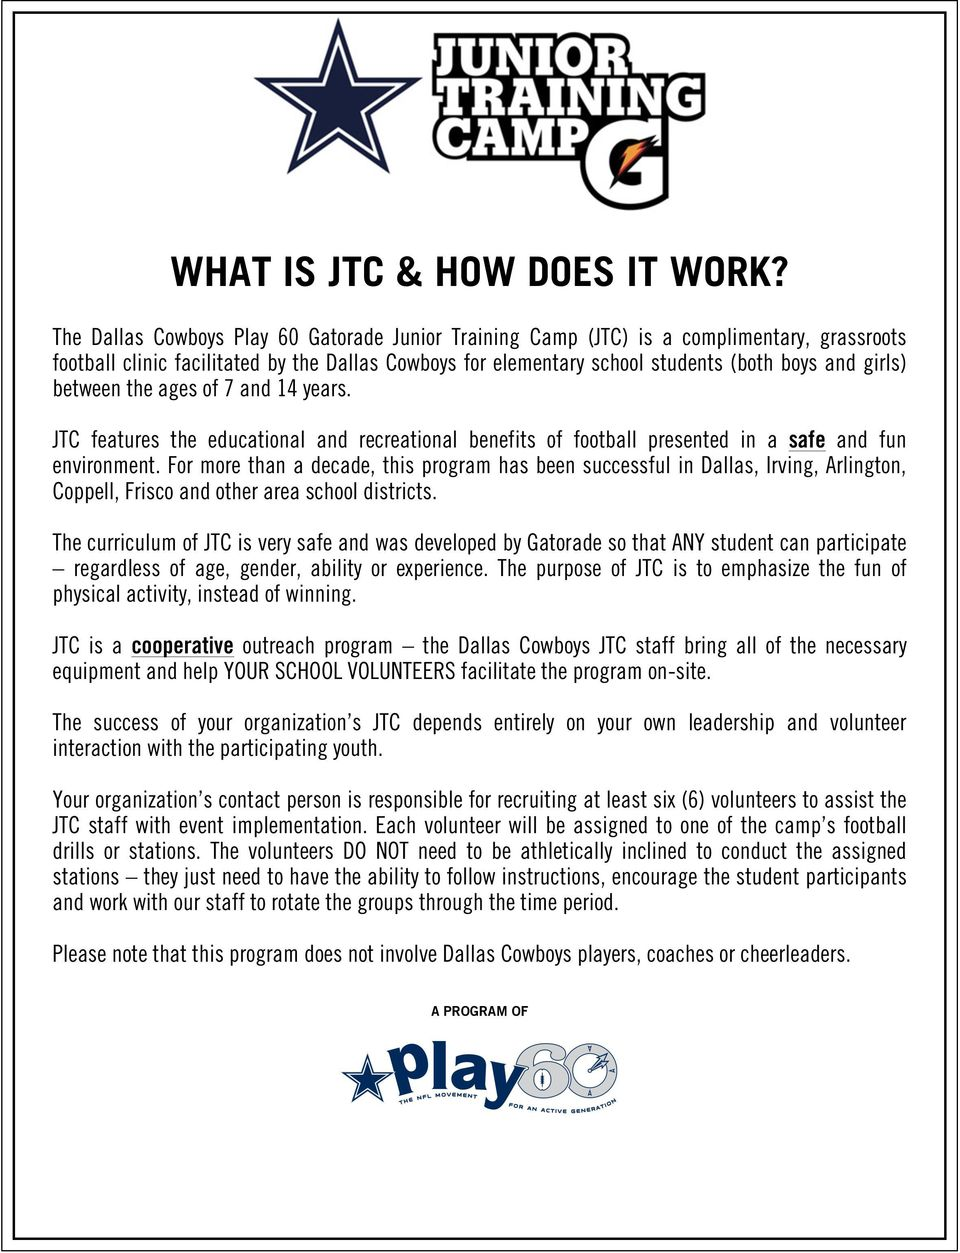 between the ages of 7 and 14 years. JTC features the educational and recreational benefits of football presented in a safe and fun environment.